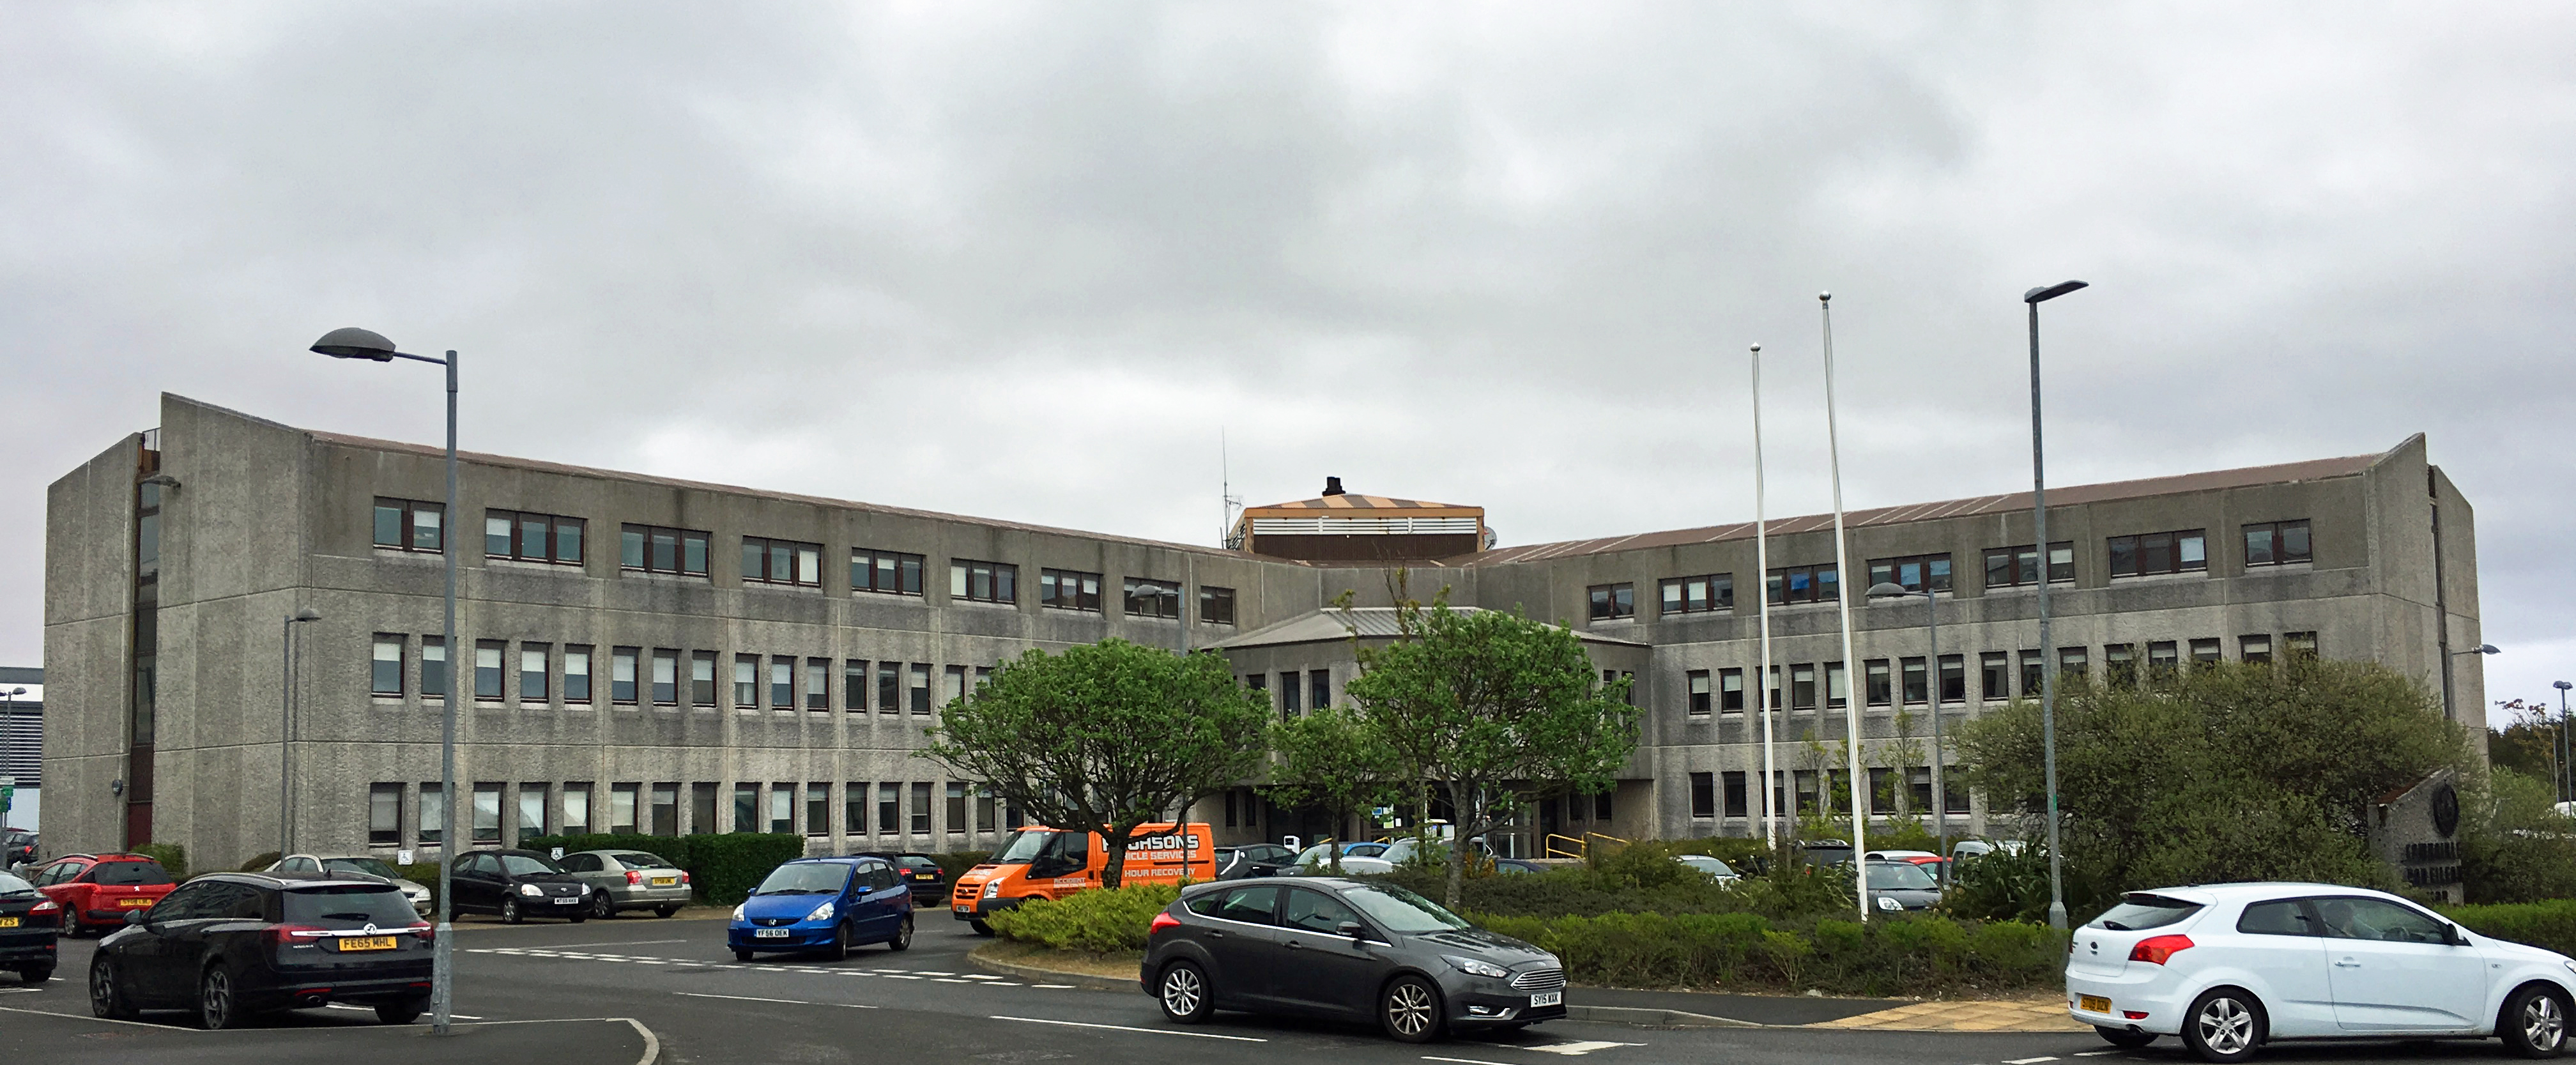 Council Offices, Stornoway